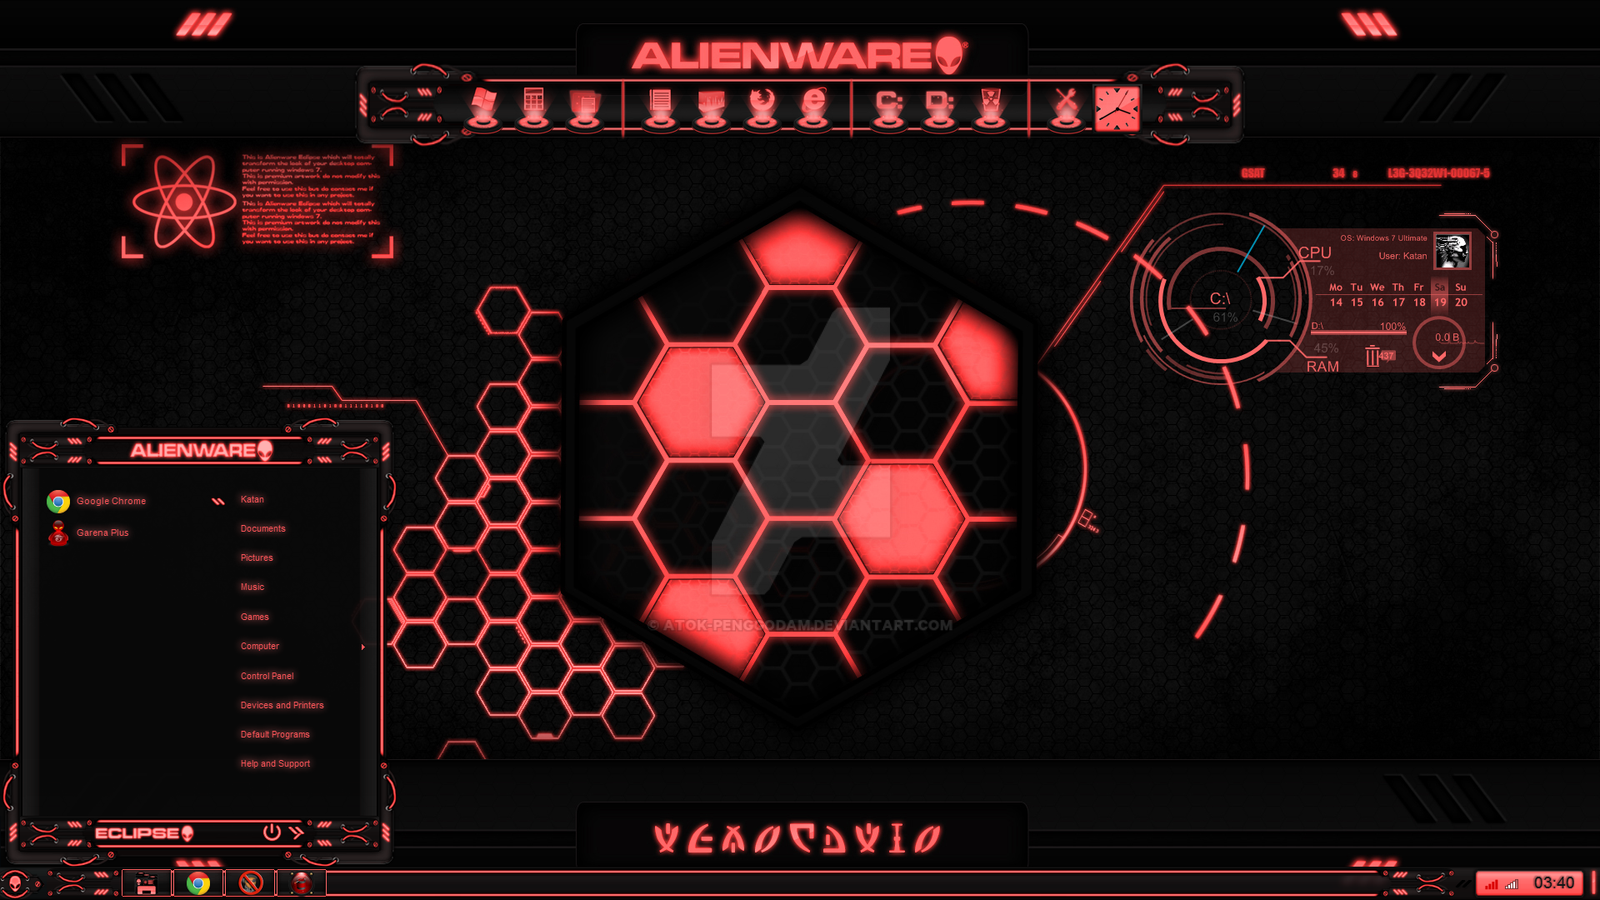 Alienware eclipse red by atok penggodam on deviantart alienware eclipse red by atok penggodam voltagebd Choice Image